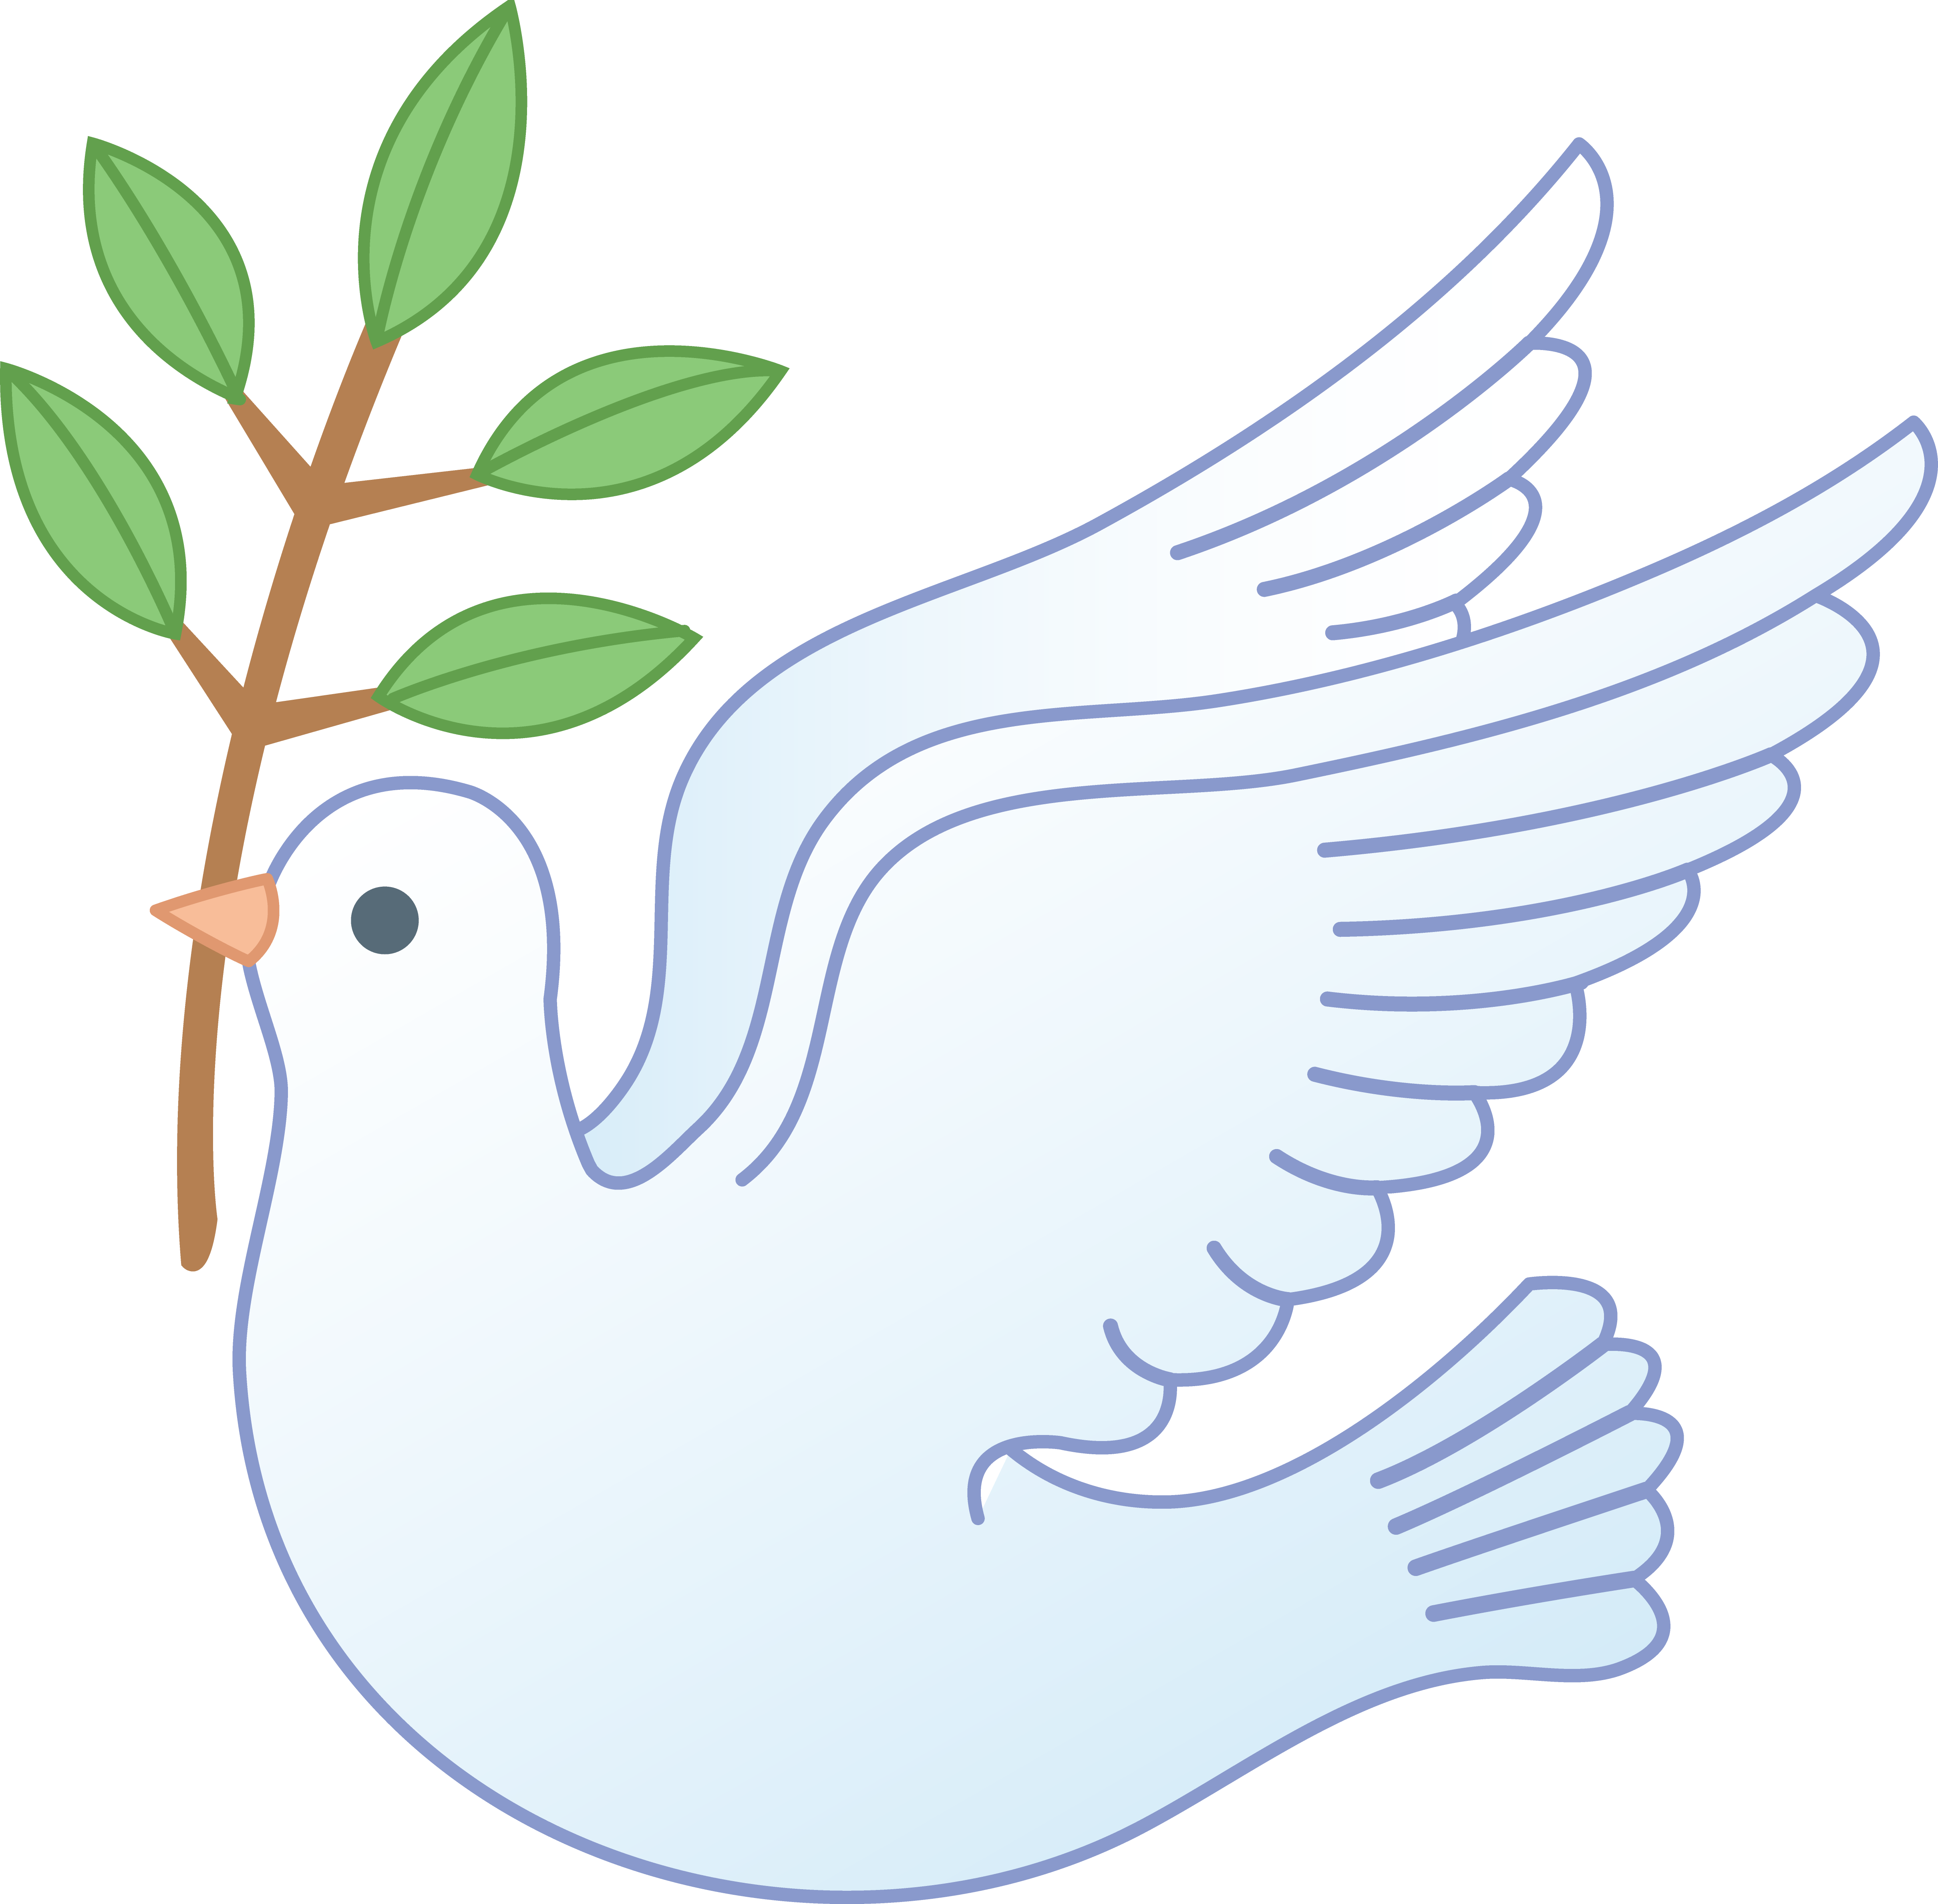 Drawing posters world peace. White dove with branch